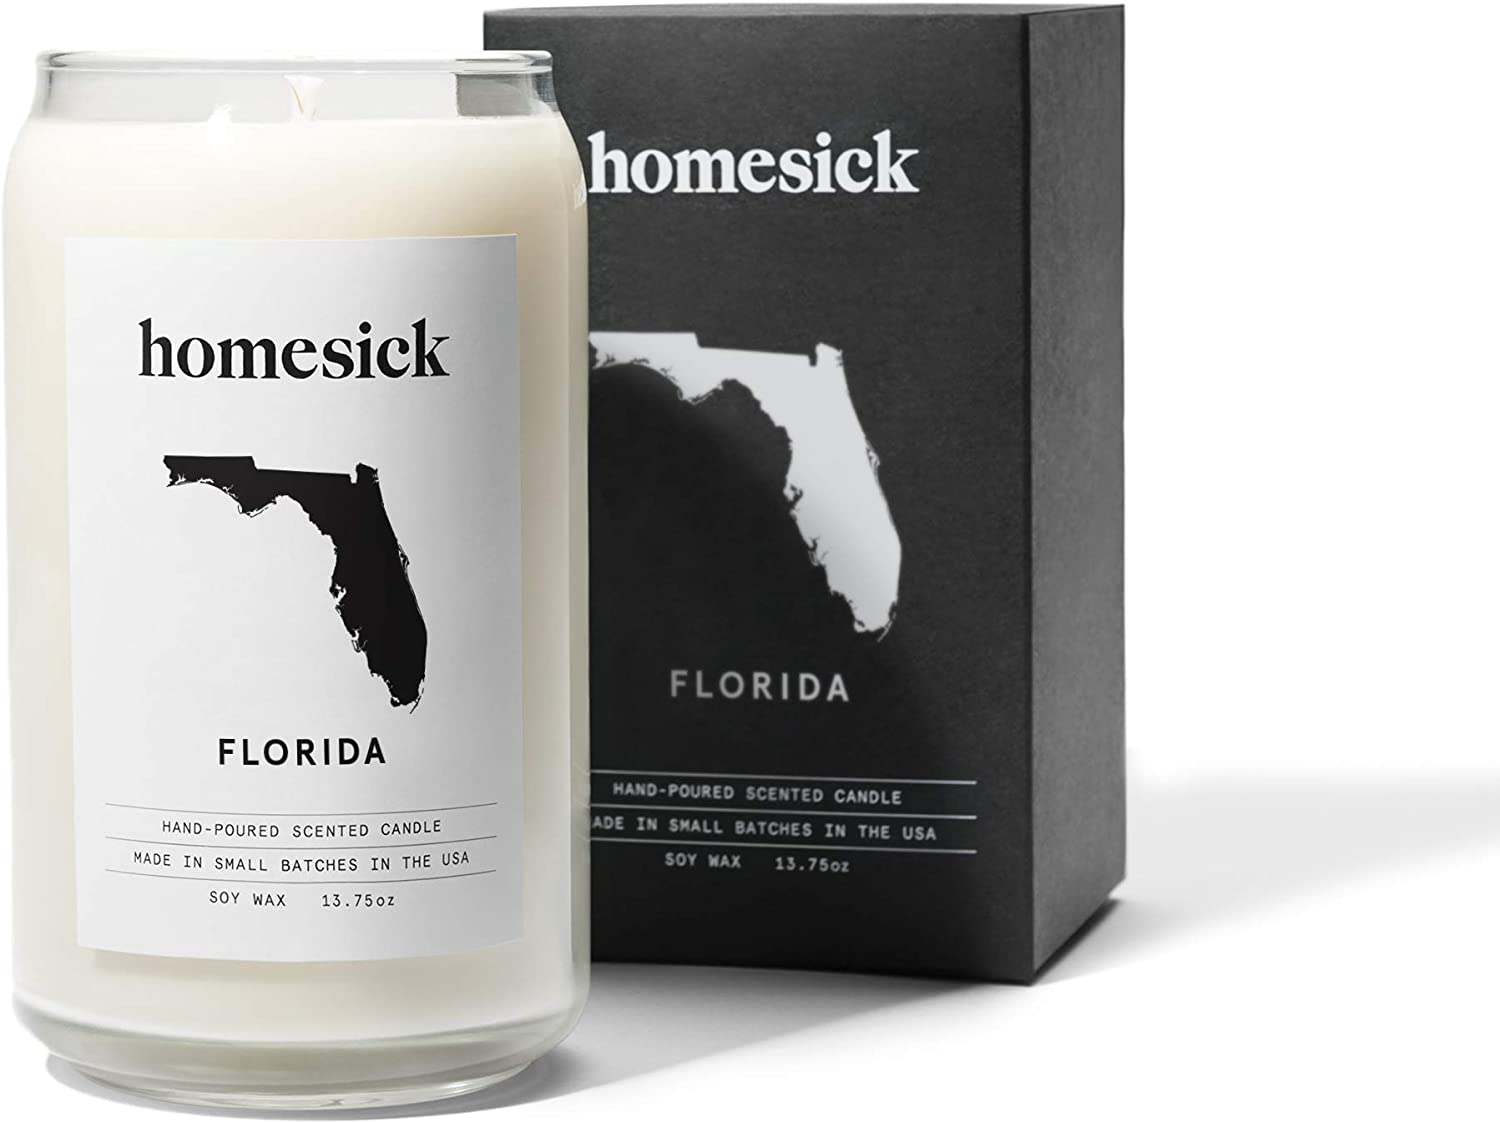 Homesick Scented Candle, Florida